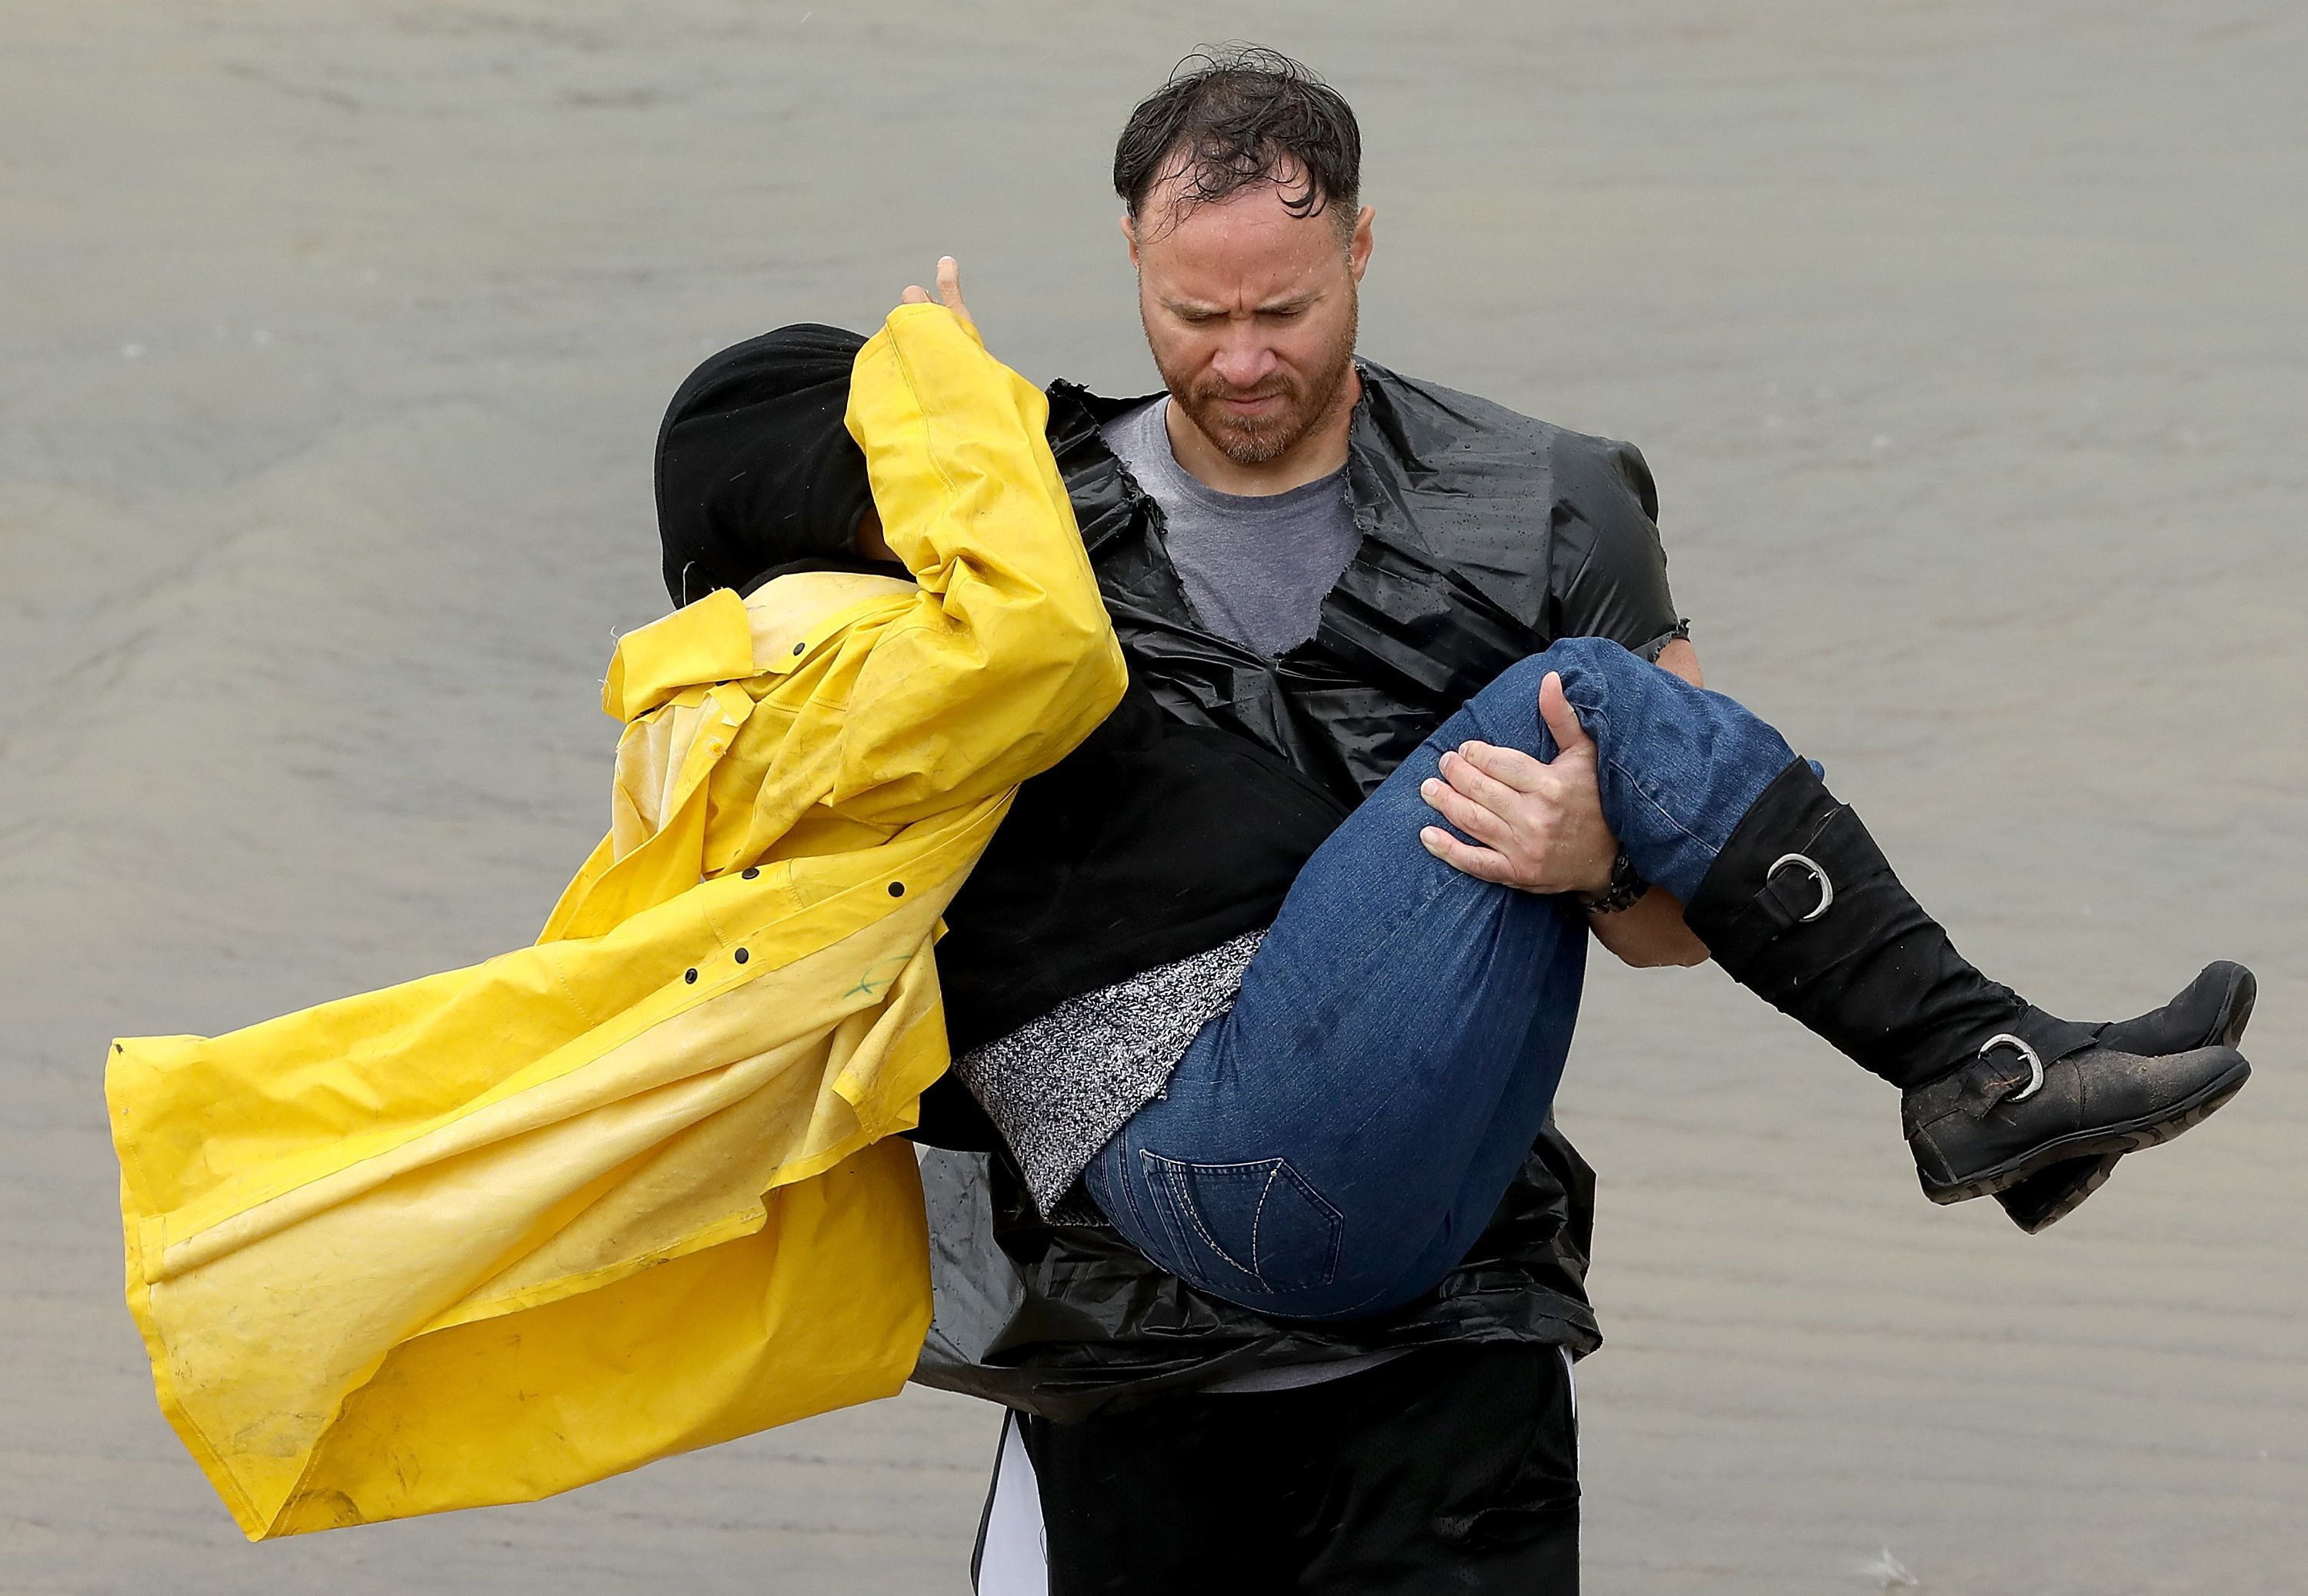 A volunteer carries a woman whose home was affected by severe flooding in north Houston.